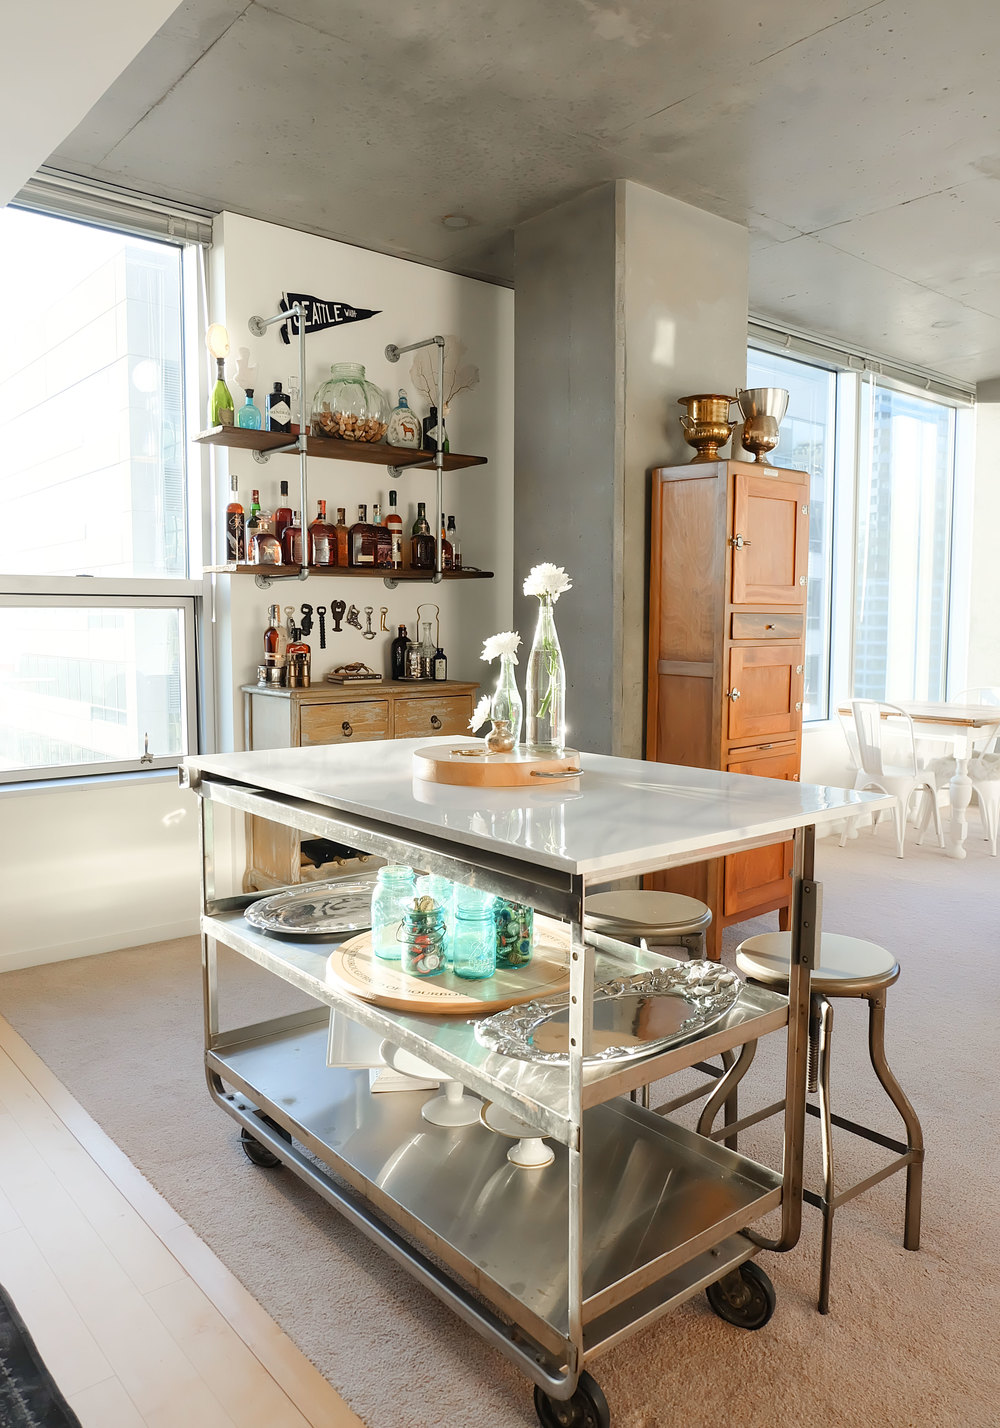 DIY Faux Carrara Marble Countertop, DIY Kitchen Island Cart, Industrial Loft in Seattle, DIY Bar